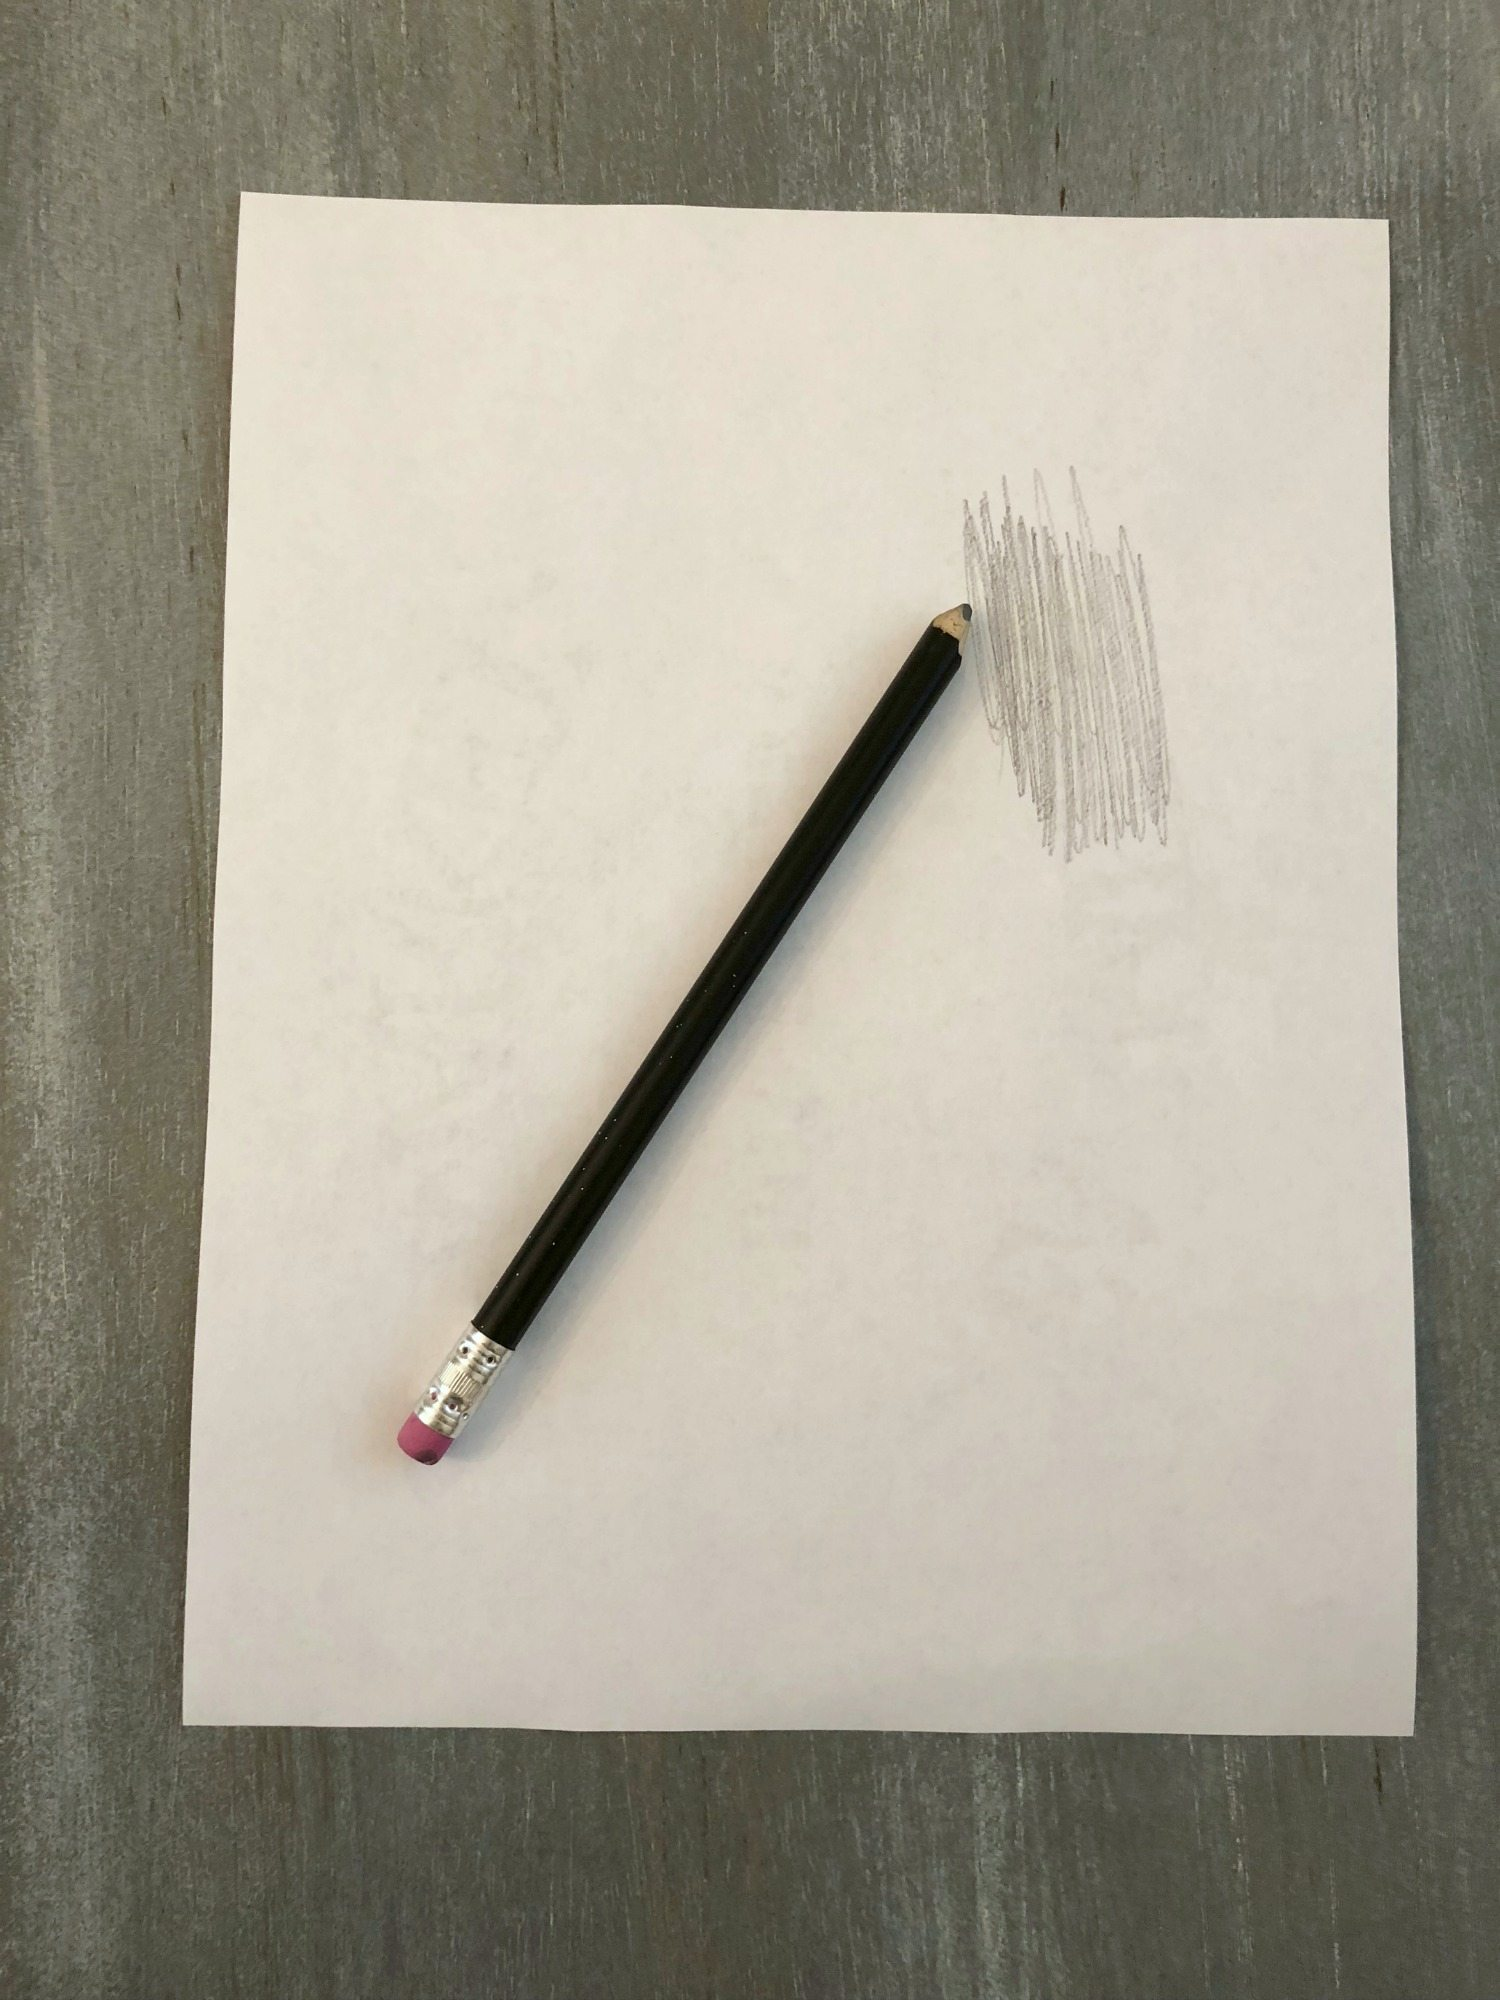 Use a pencil to shade the back